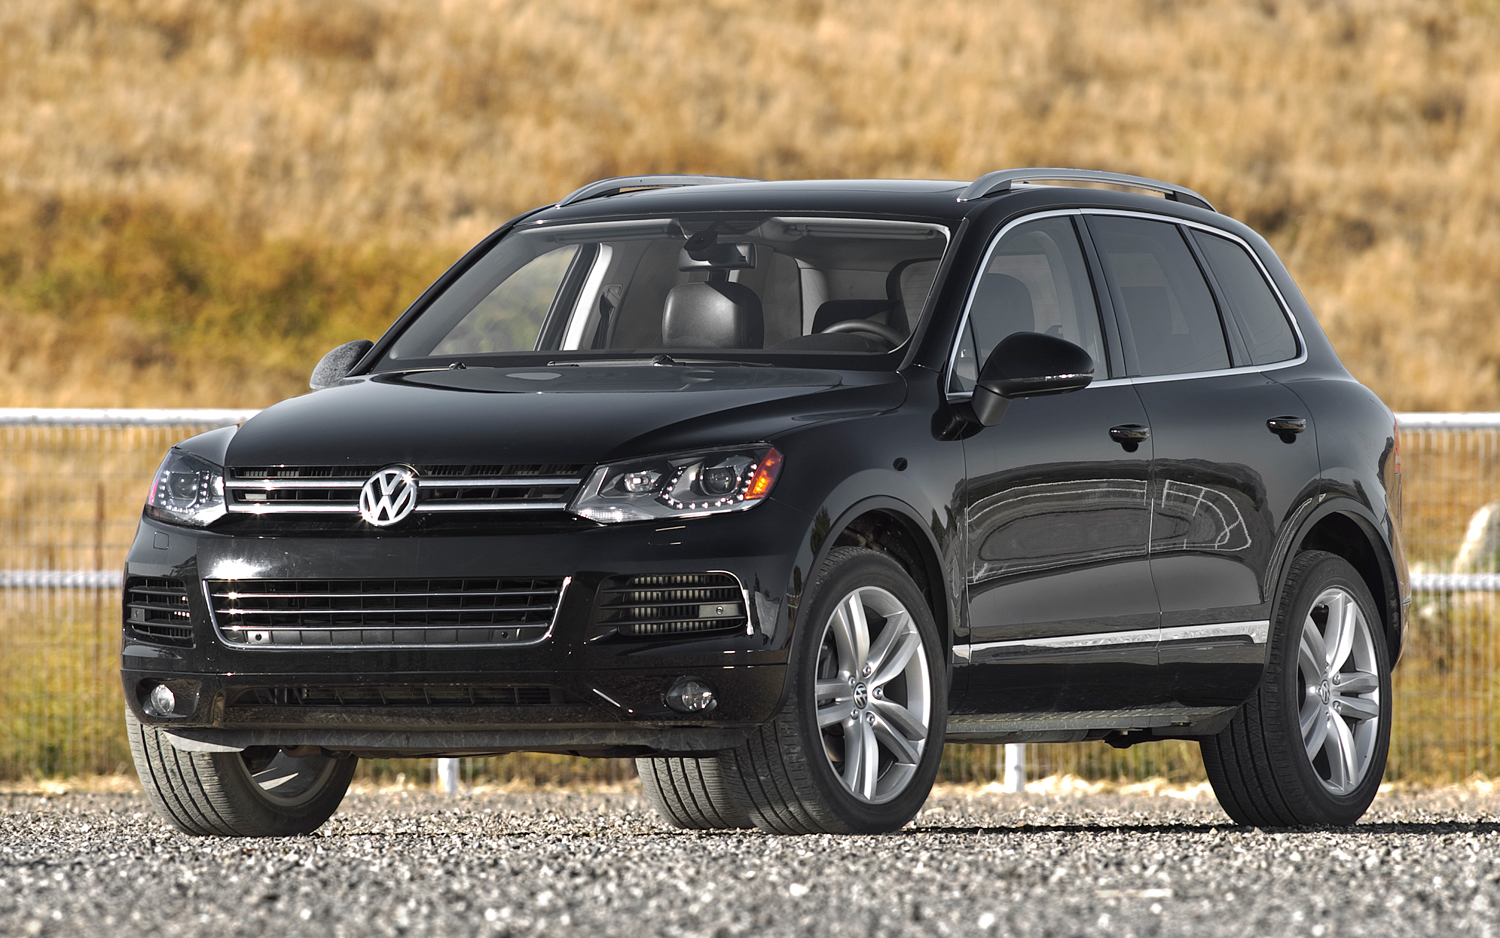 2012 volkswagen touareg information and photos momentcar. Black Bedroom Furniture Sets. Home Design Ideas